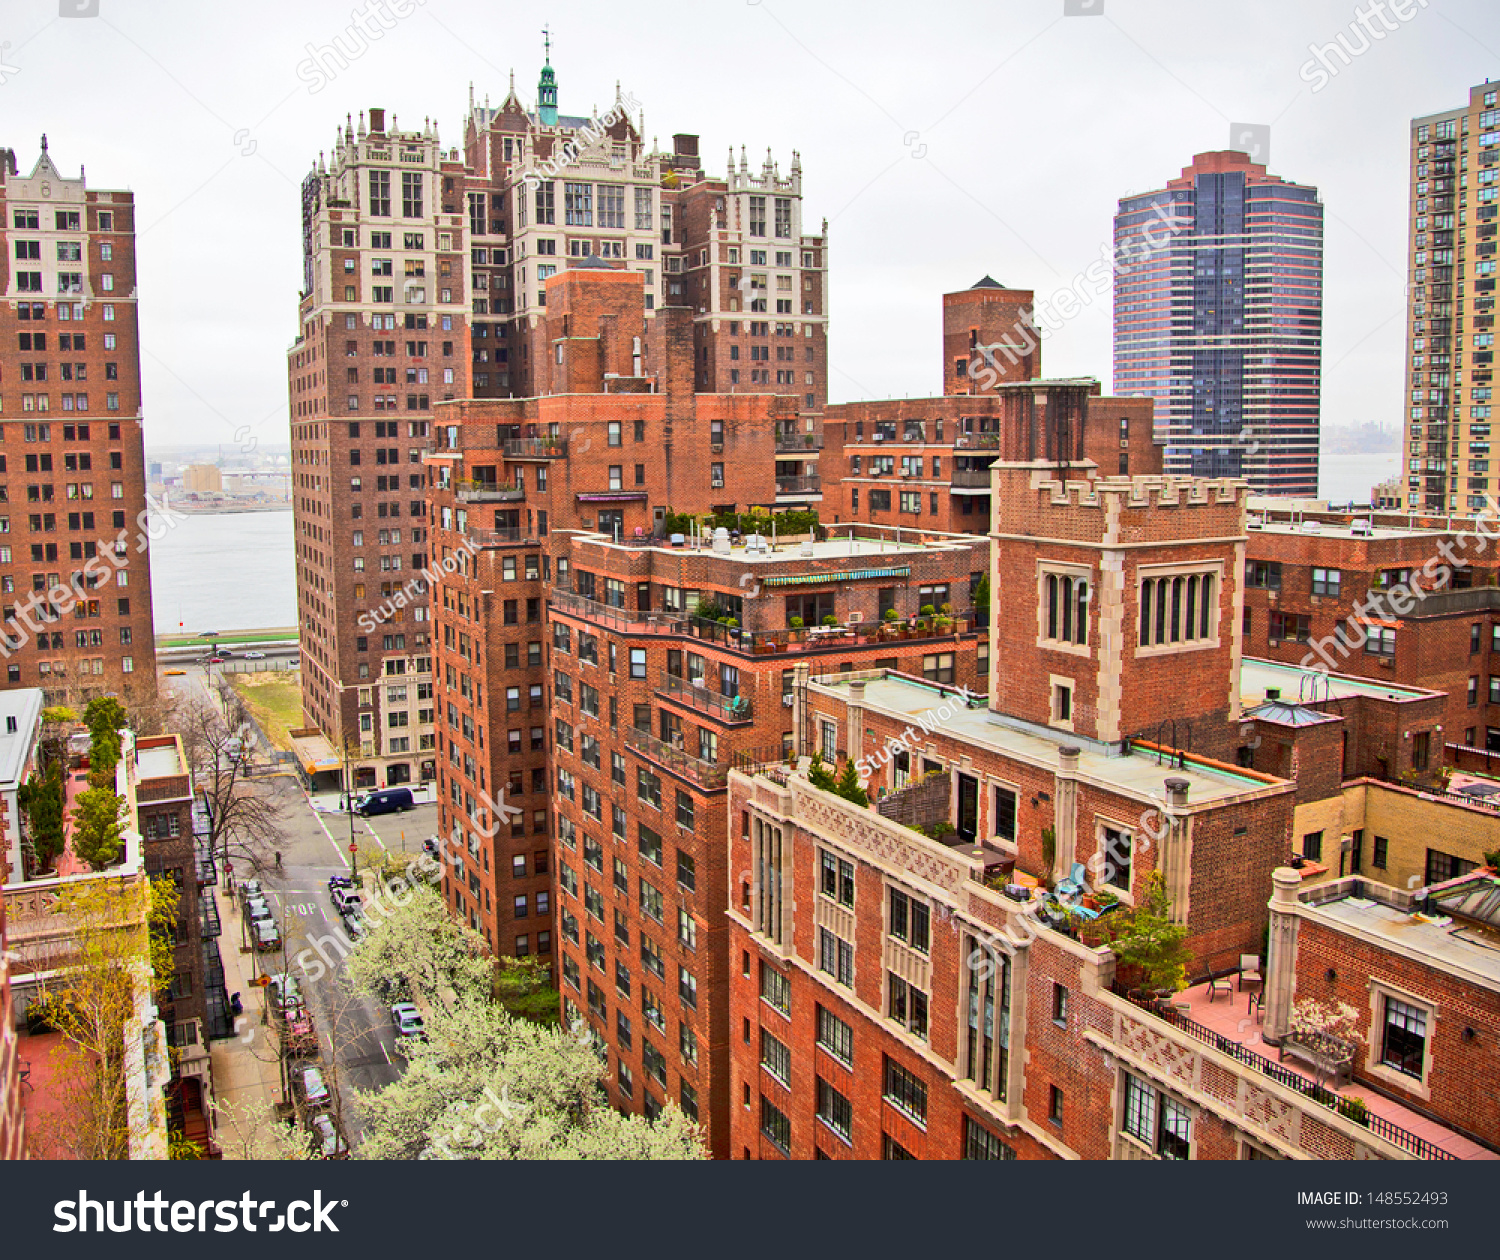 Cheap Apartments Outside Bricks: Traditional Red Brick Apartments In Manhattan New York